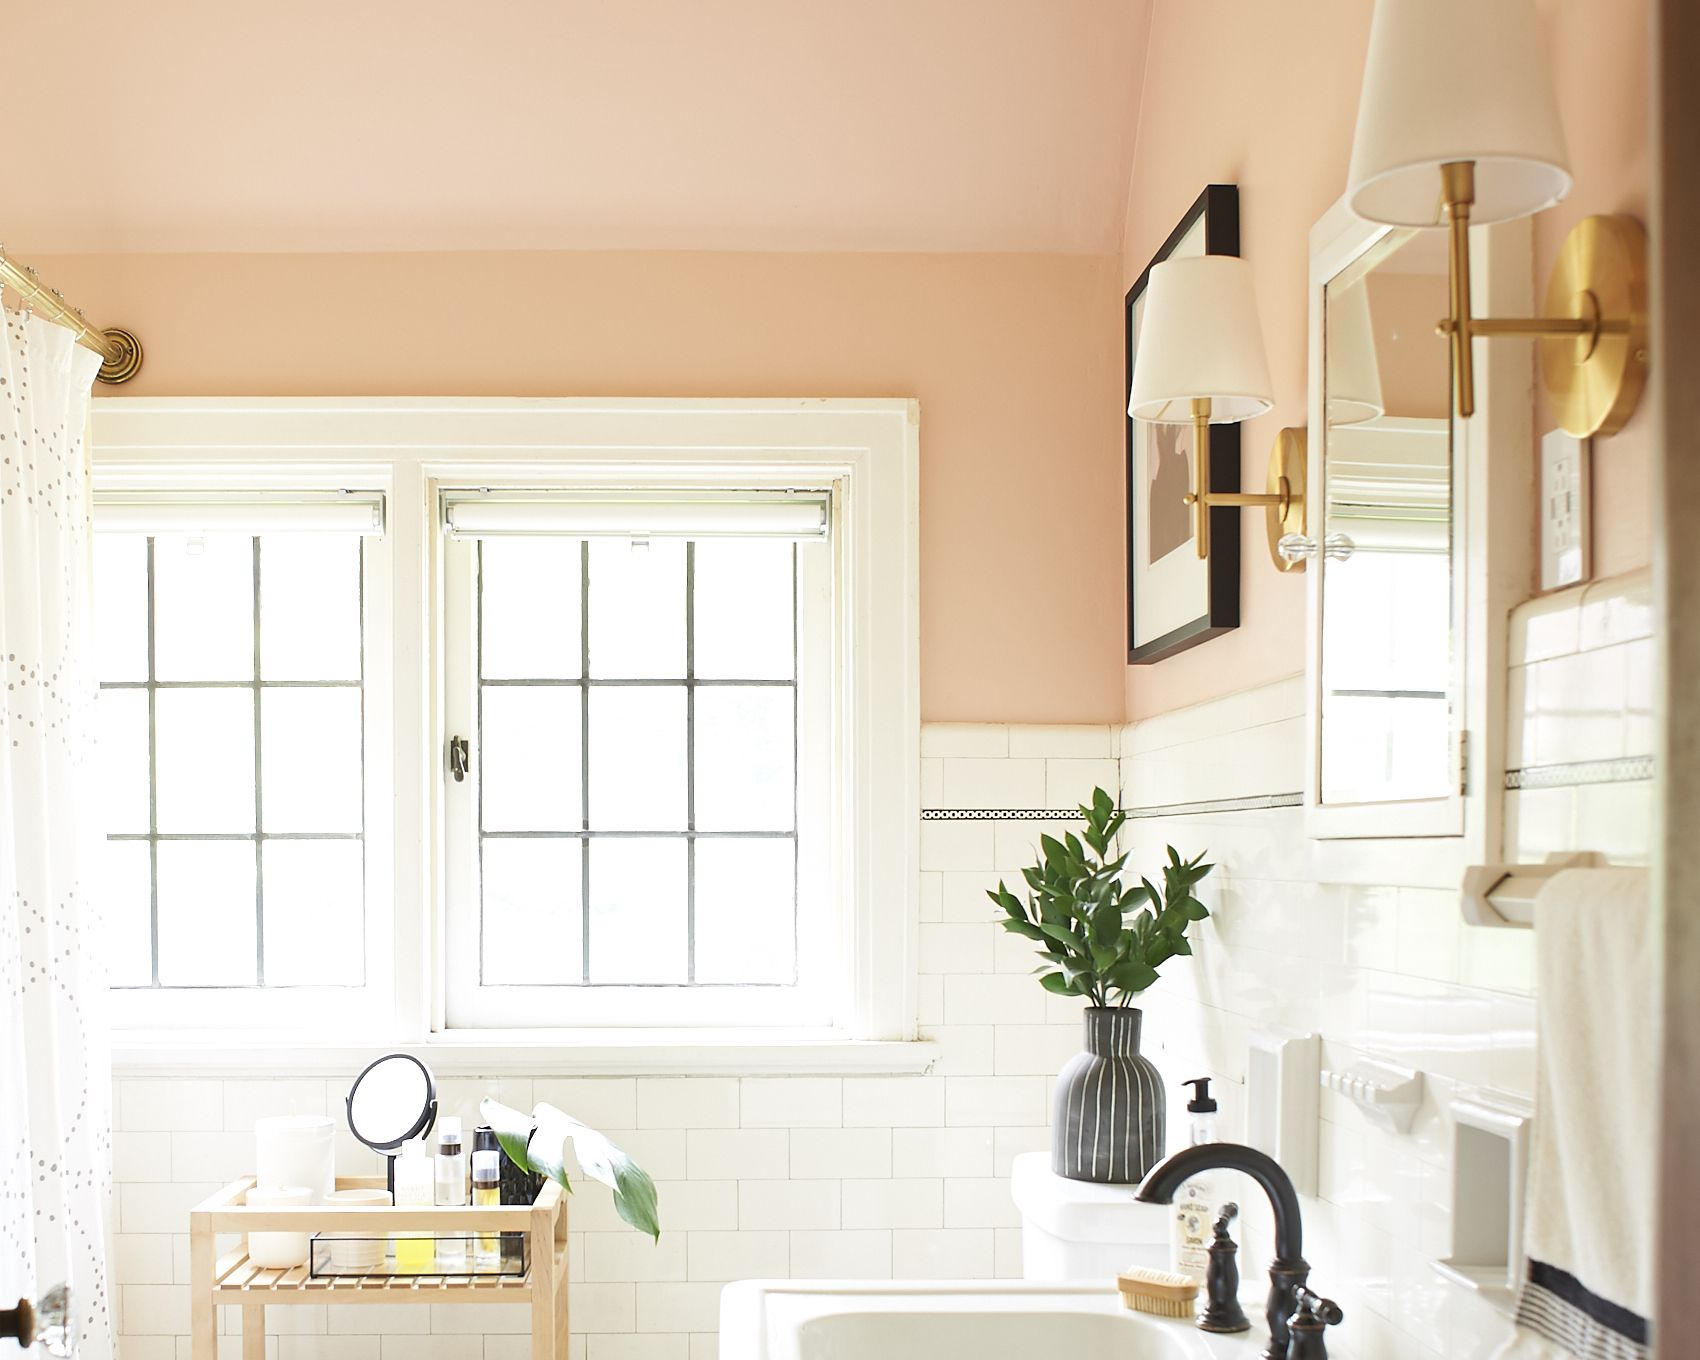 Salle De Bain Du Futur ~ blush and moody tones in a pittsburgh home for photographers